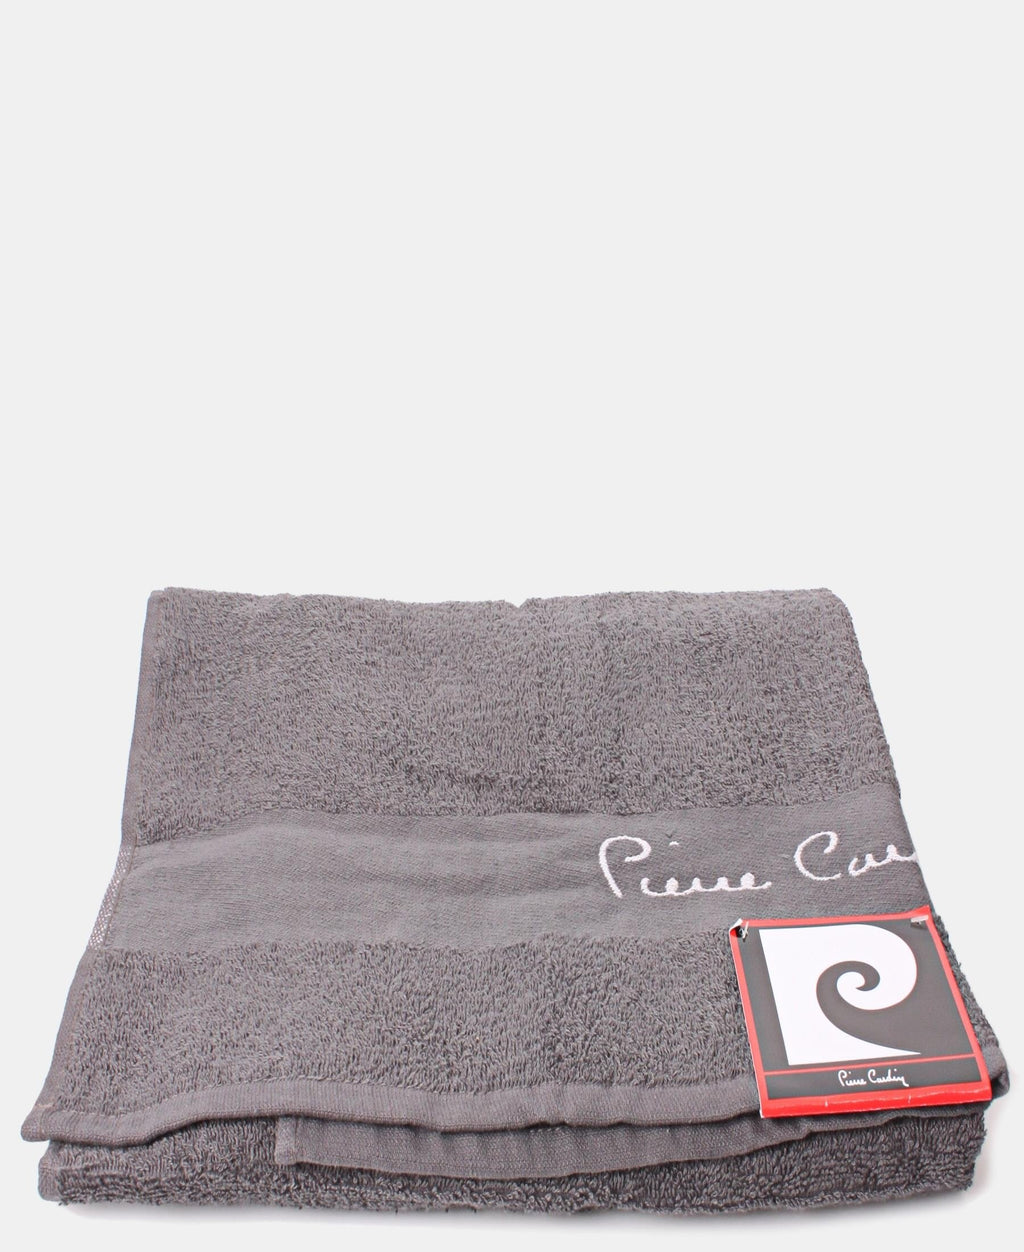 70X130cm Jacquard Border Bath Towel - Charcoal